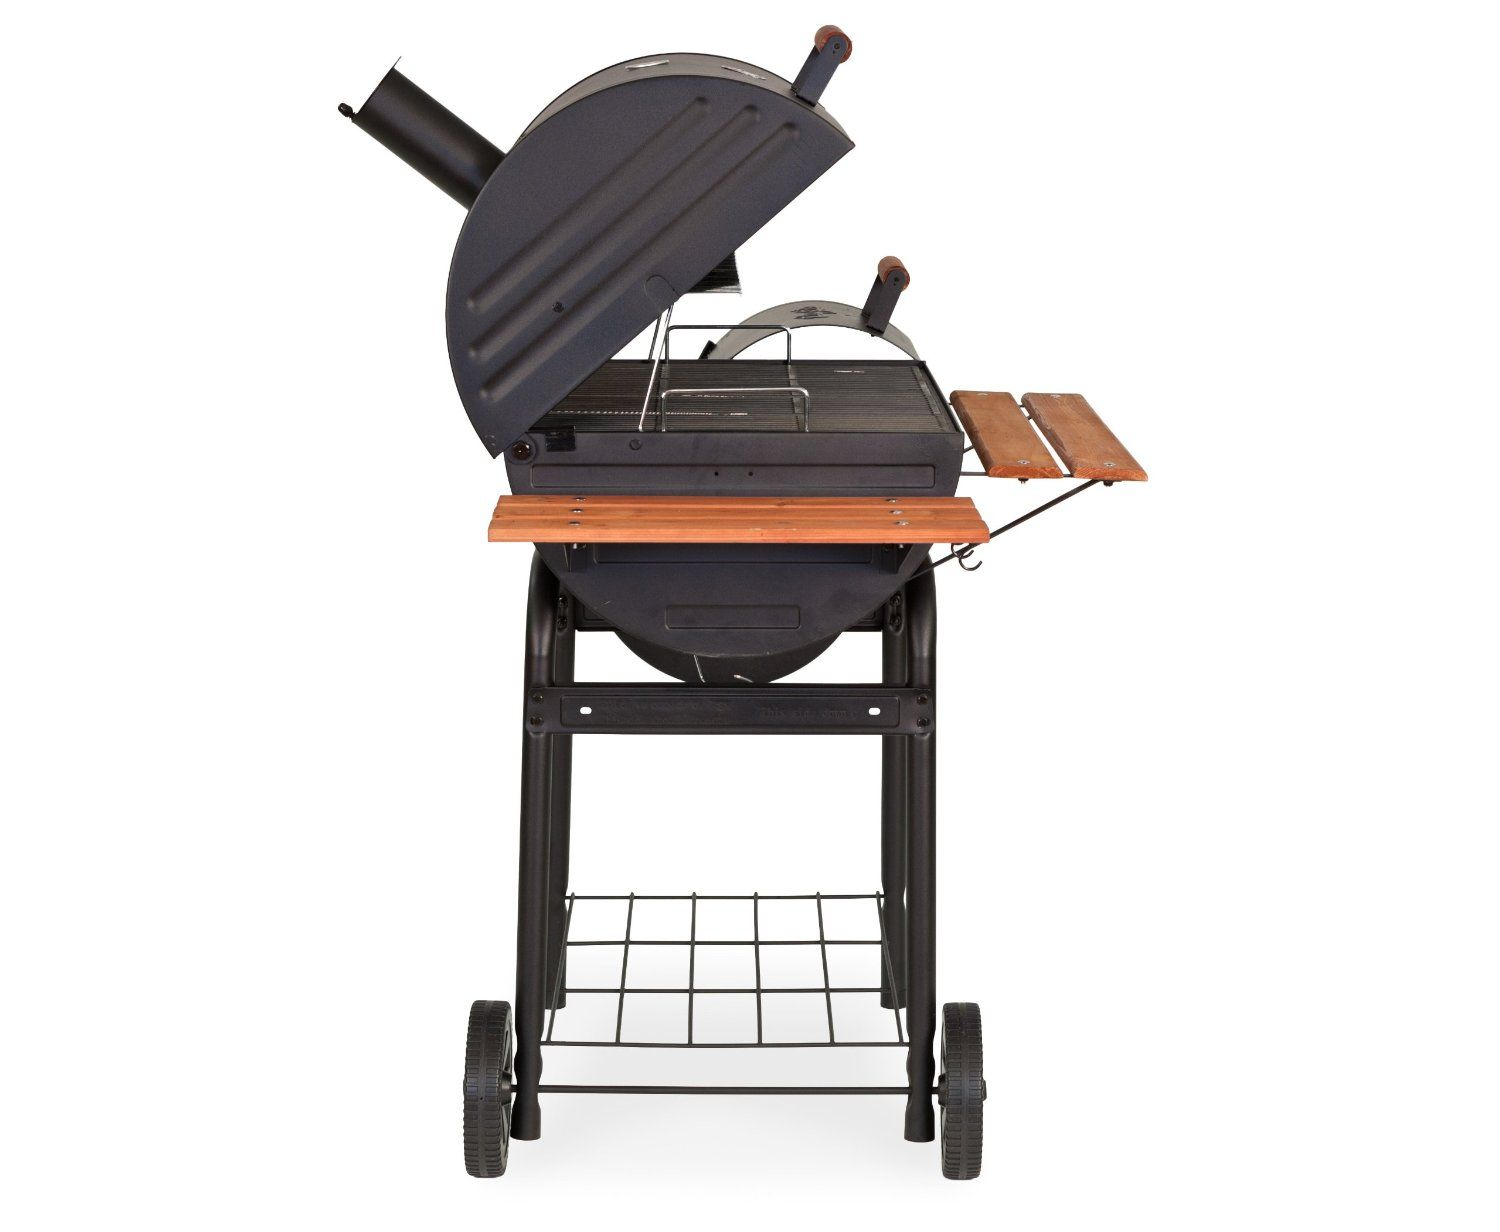 Char griller professional grill and smoker - Amazon Com Char Griller 1224 Smokin Pro 830 Square Inch Charcoal Grill With